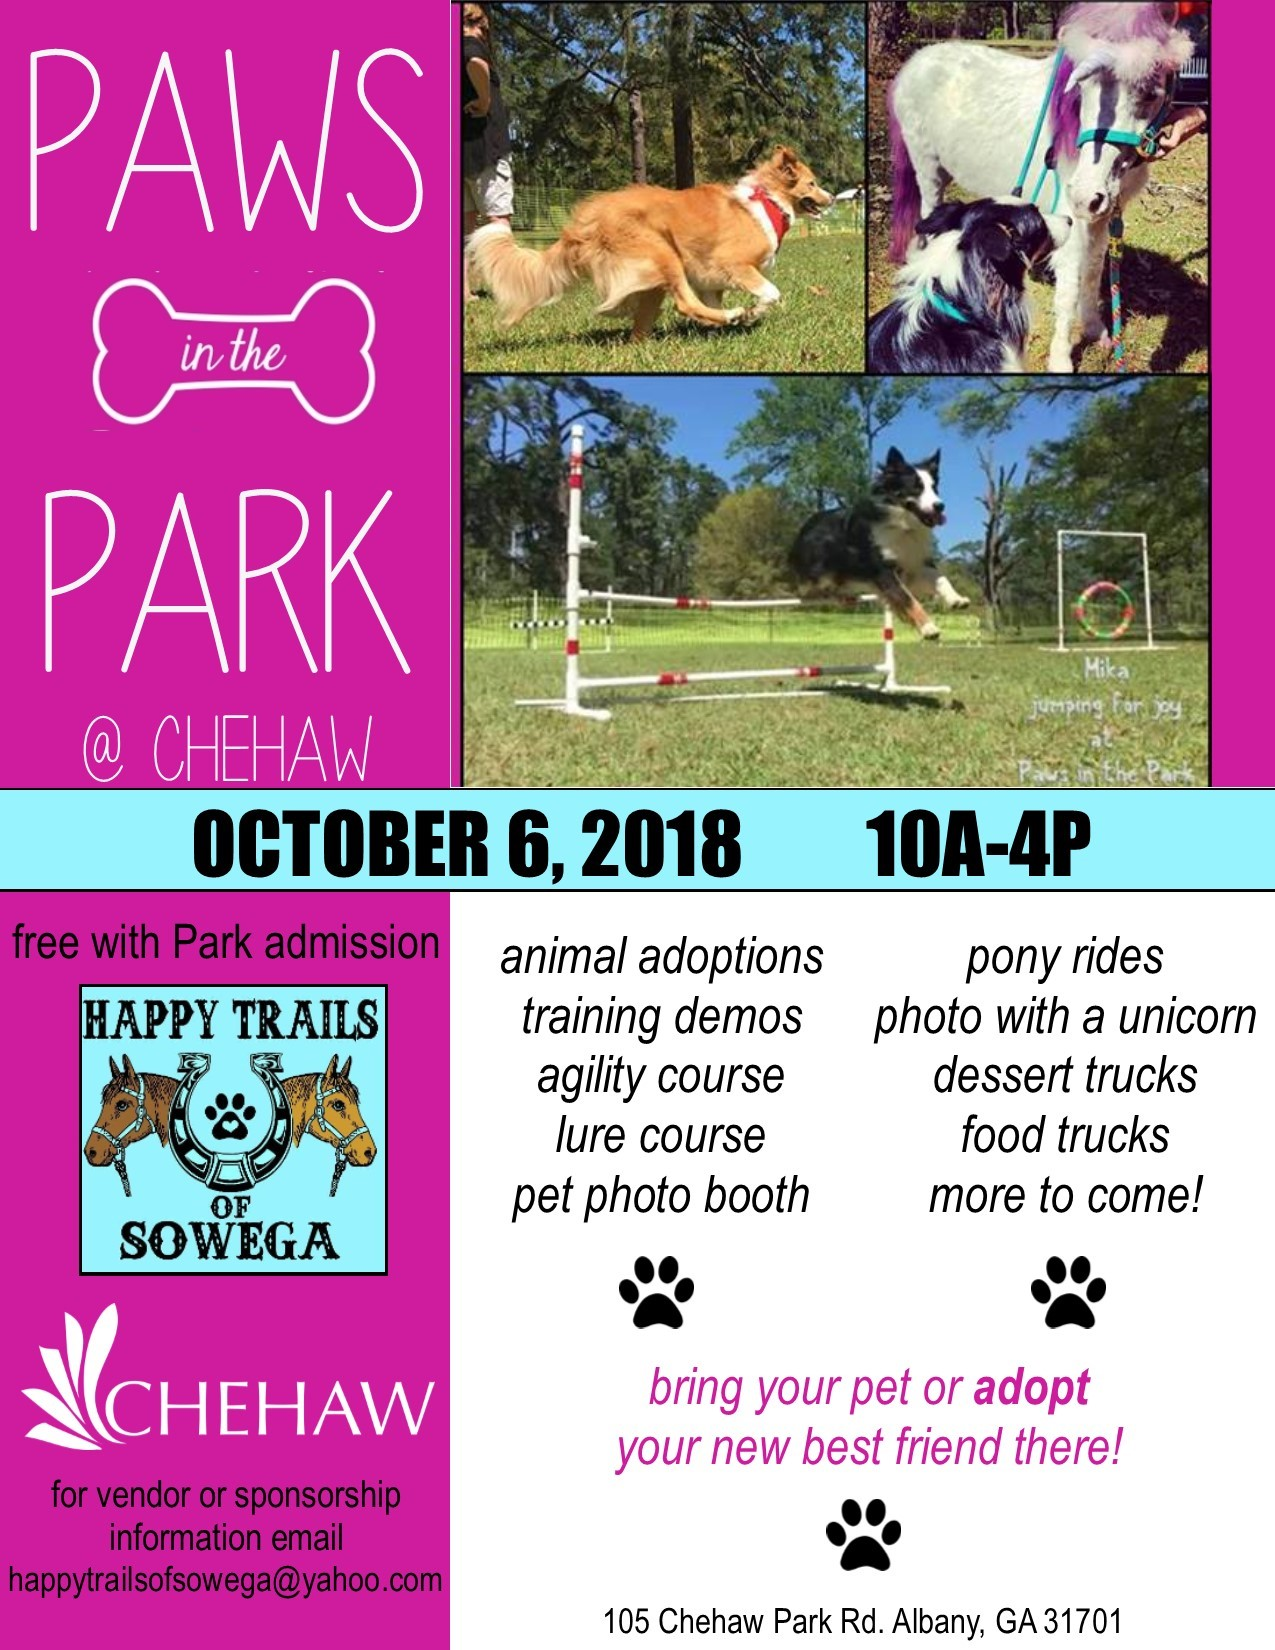 Paws in the Park | Calendar | Visit Albany Georgia | Albany